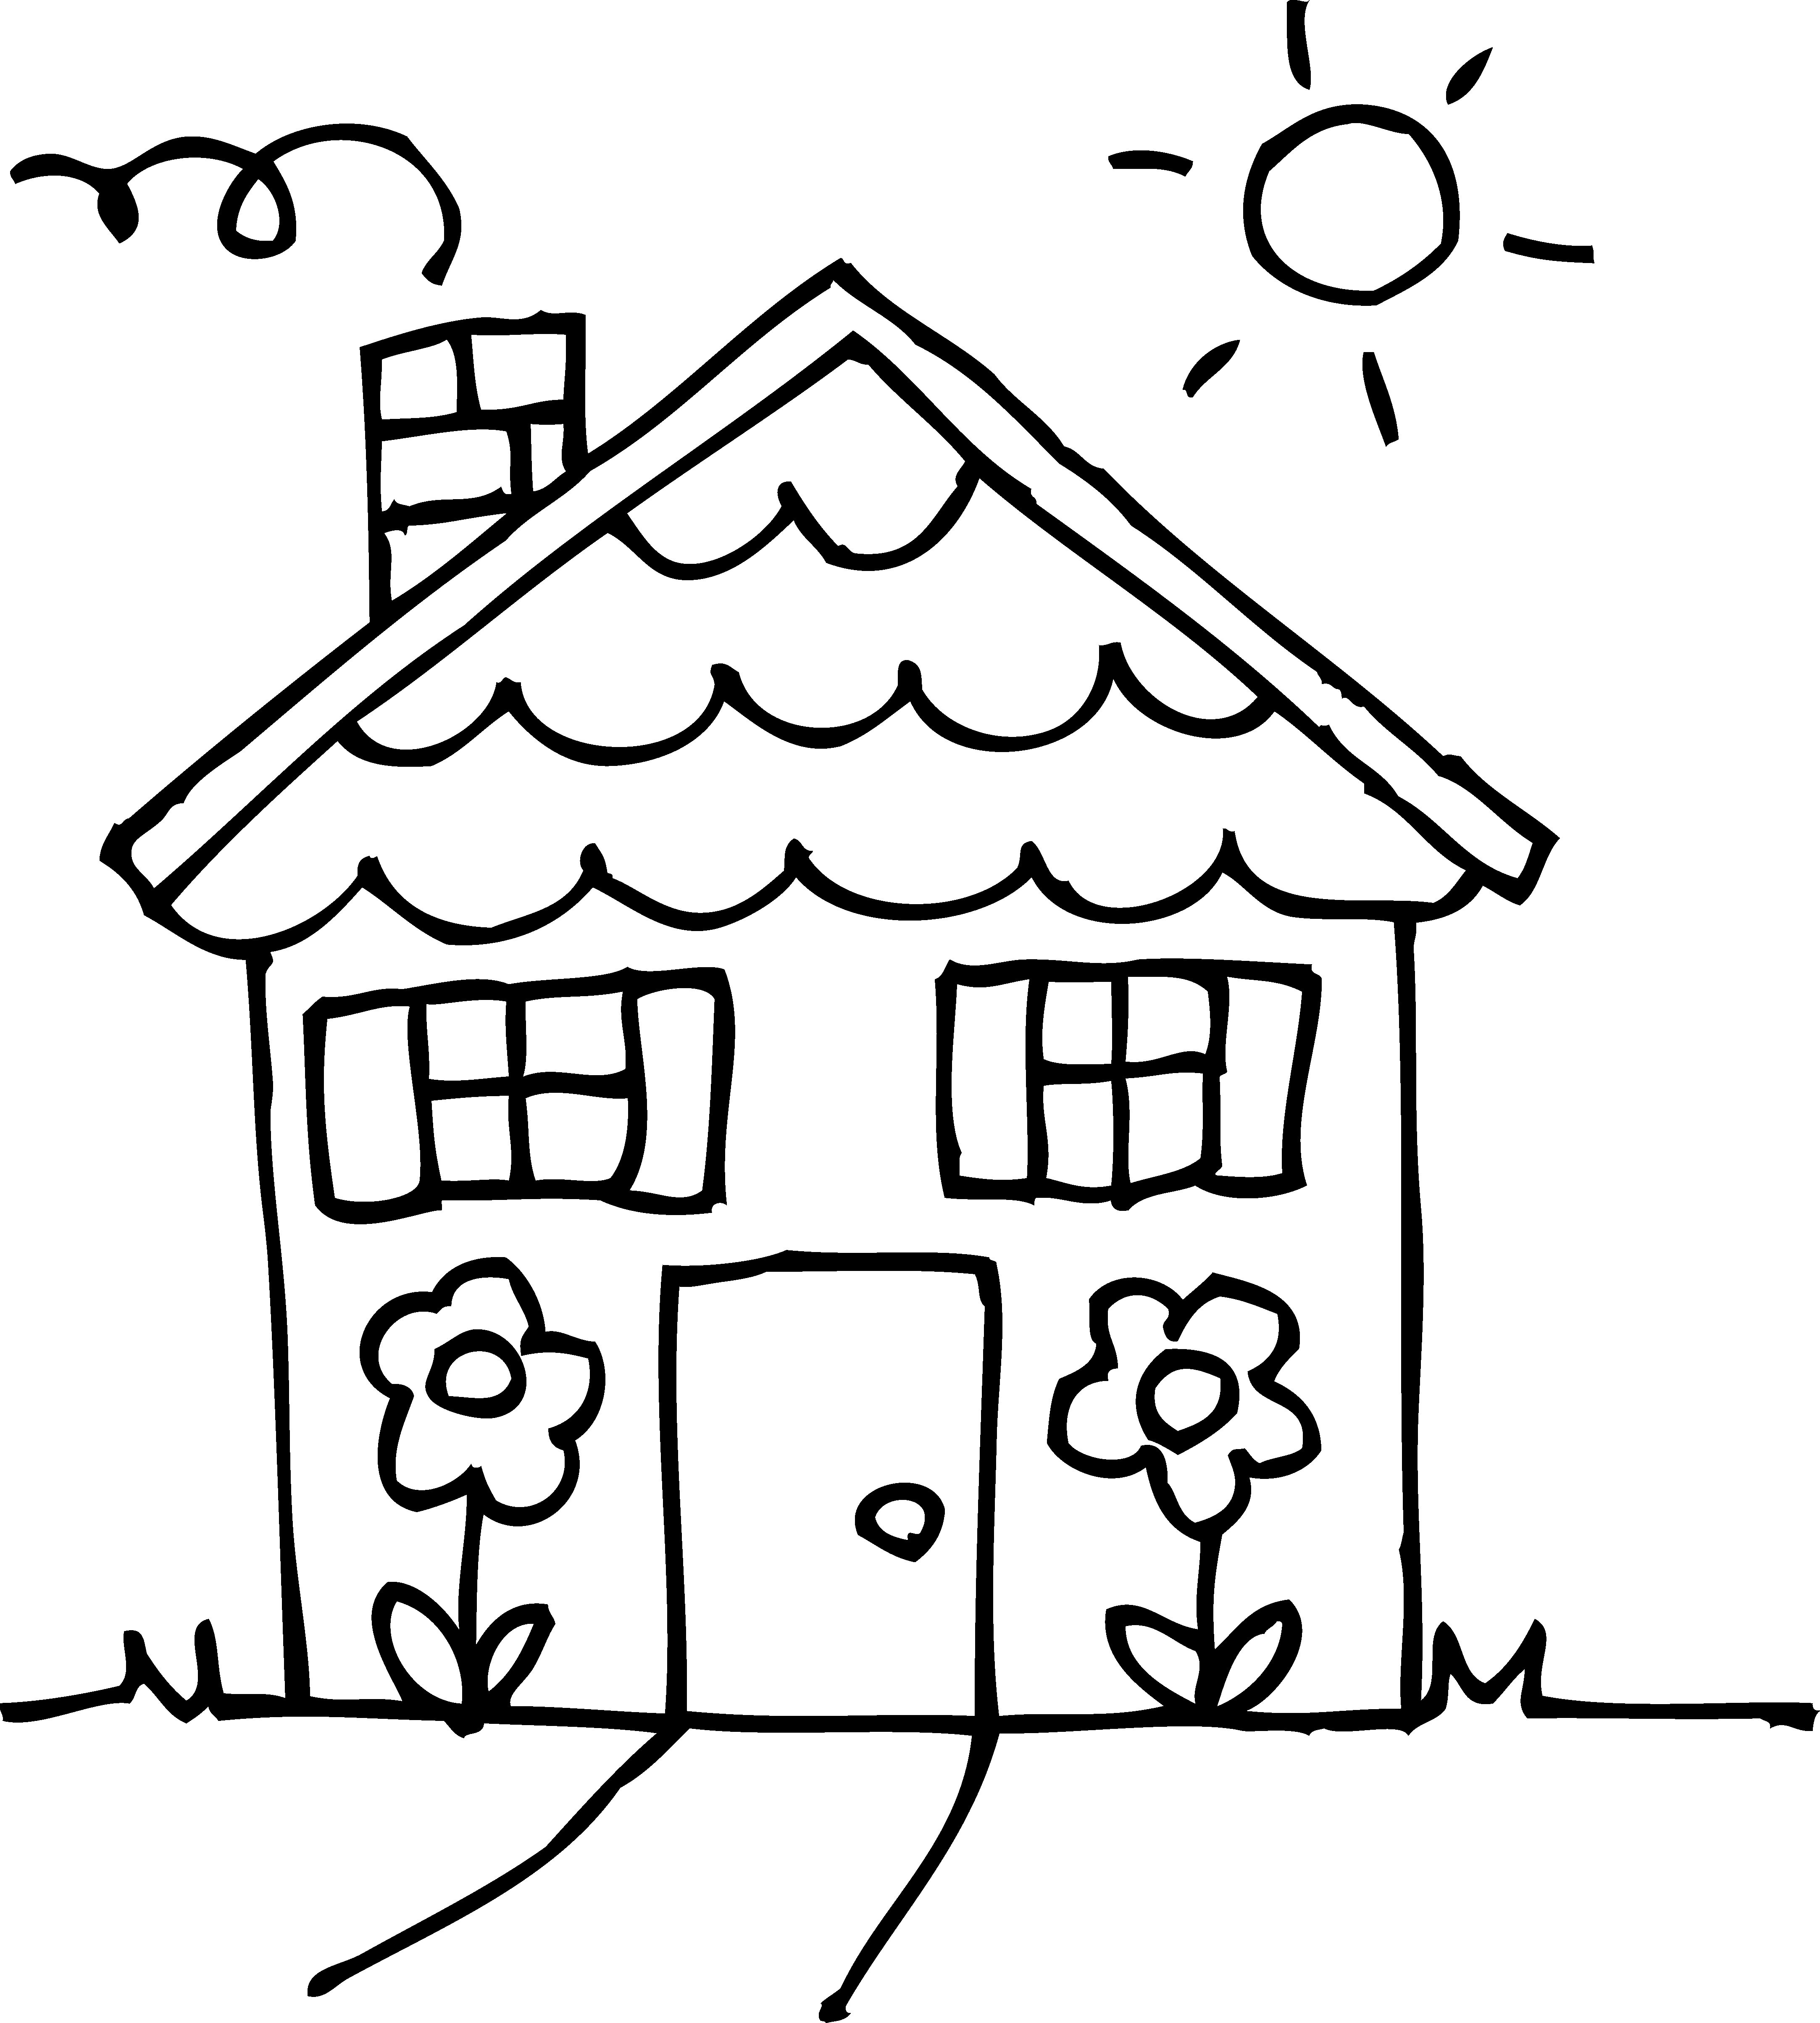 coloring houses house coloring pages the sun flower pages coloring houses